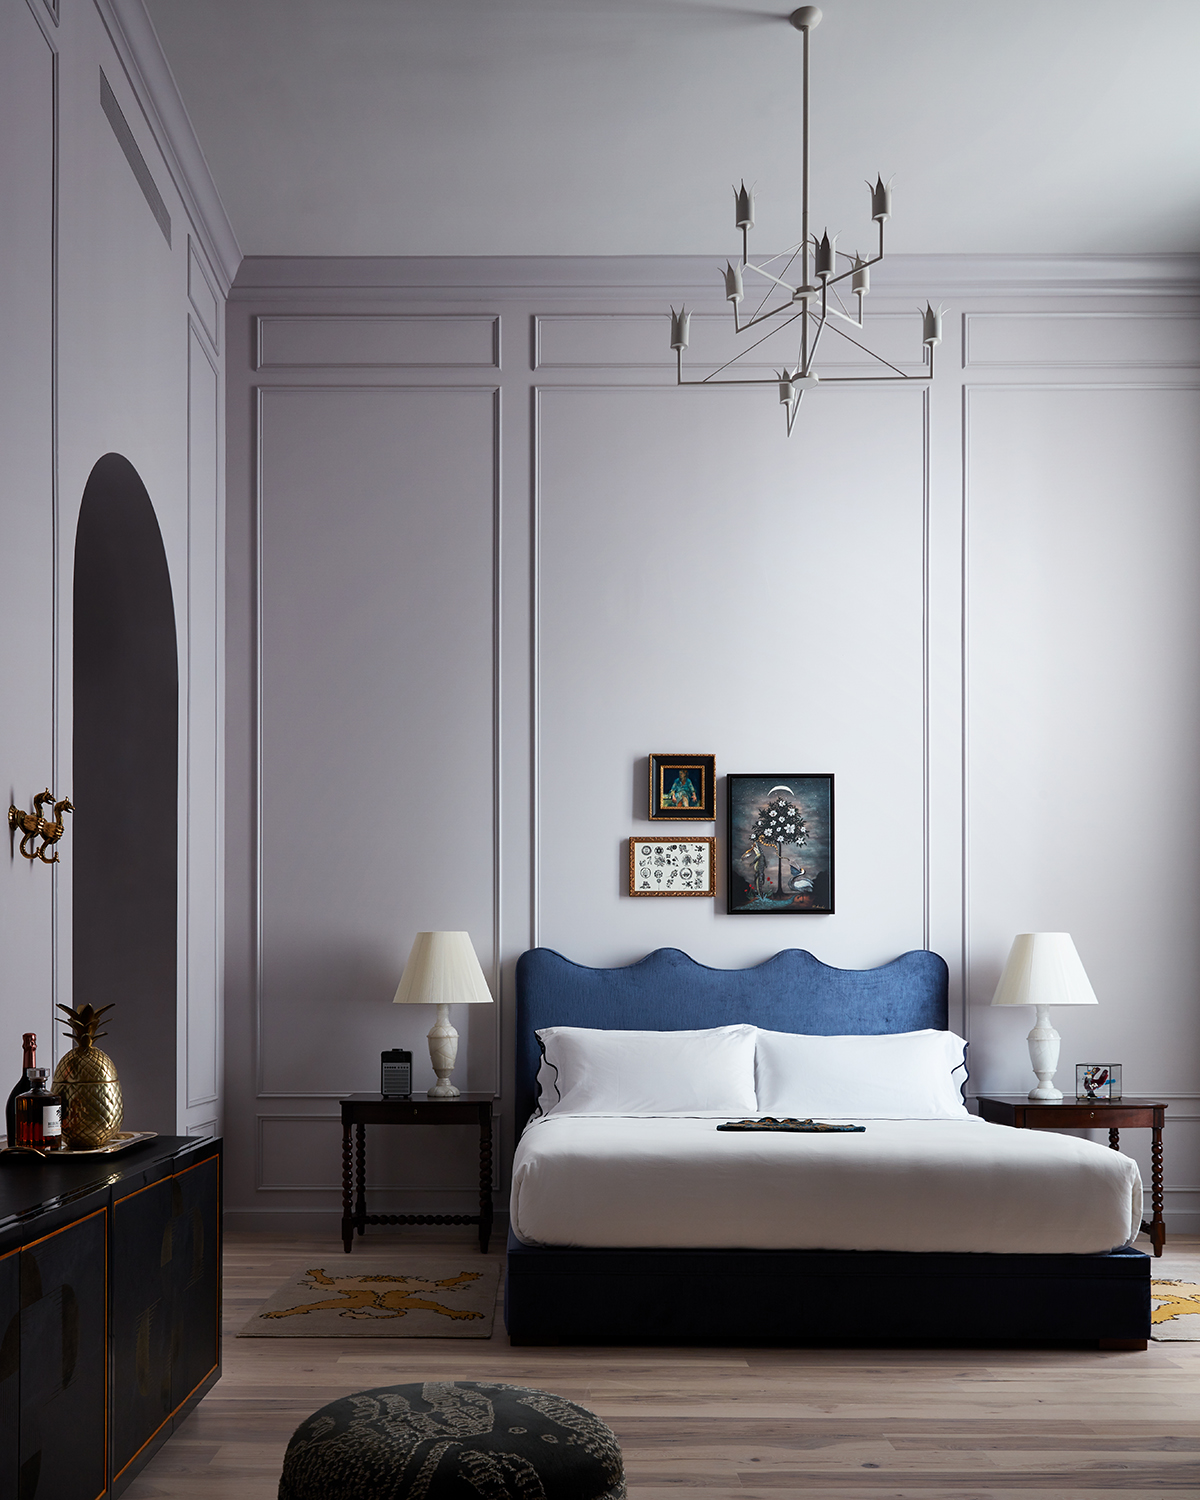 soft lilac walls and a bold blue bed